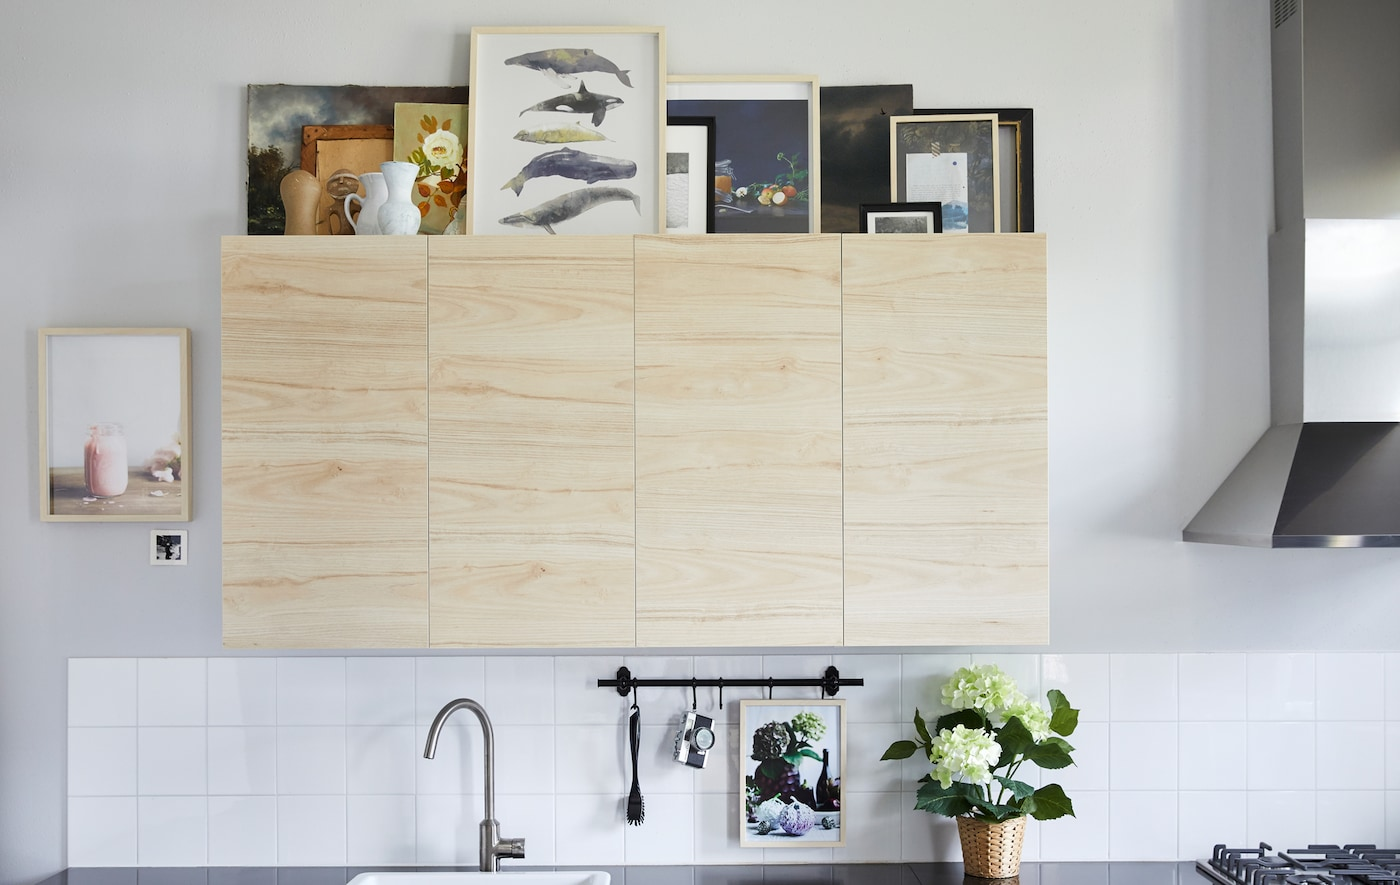 How To Use The Tops Of Kitchen Cabinets Ikea Ireland